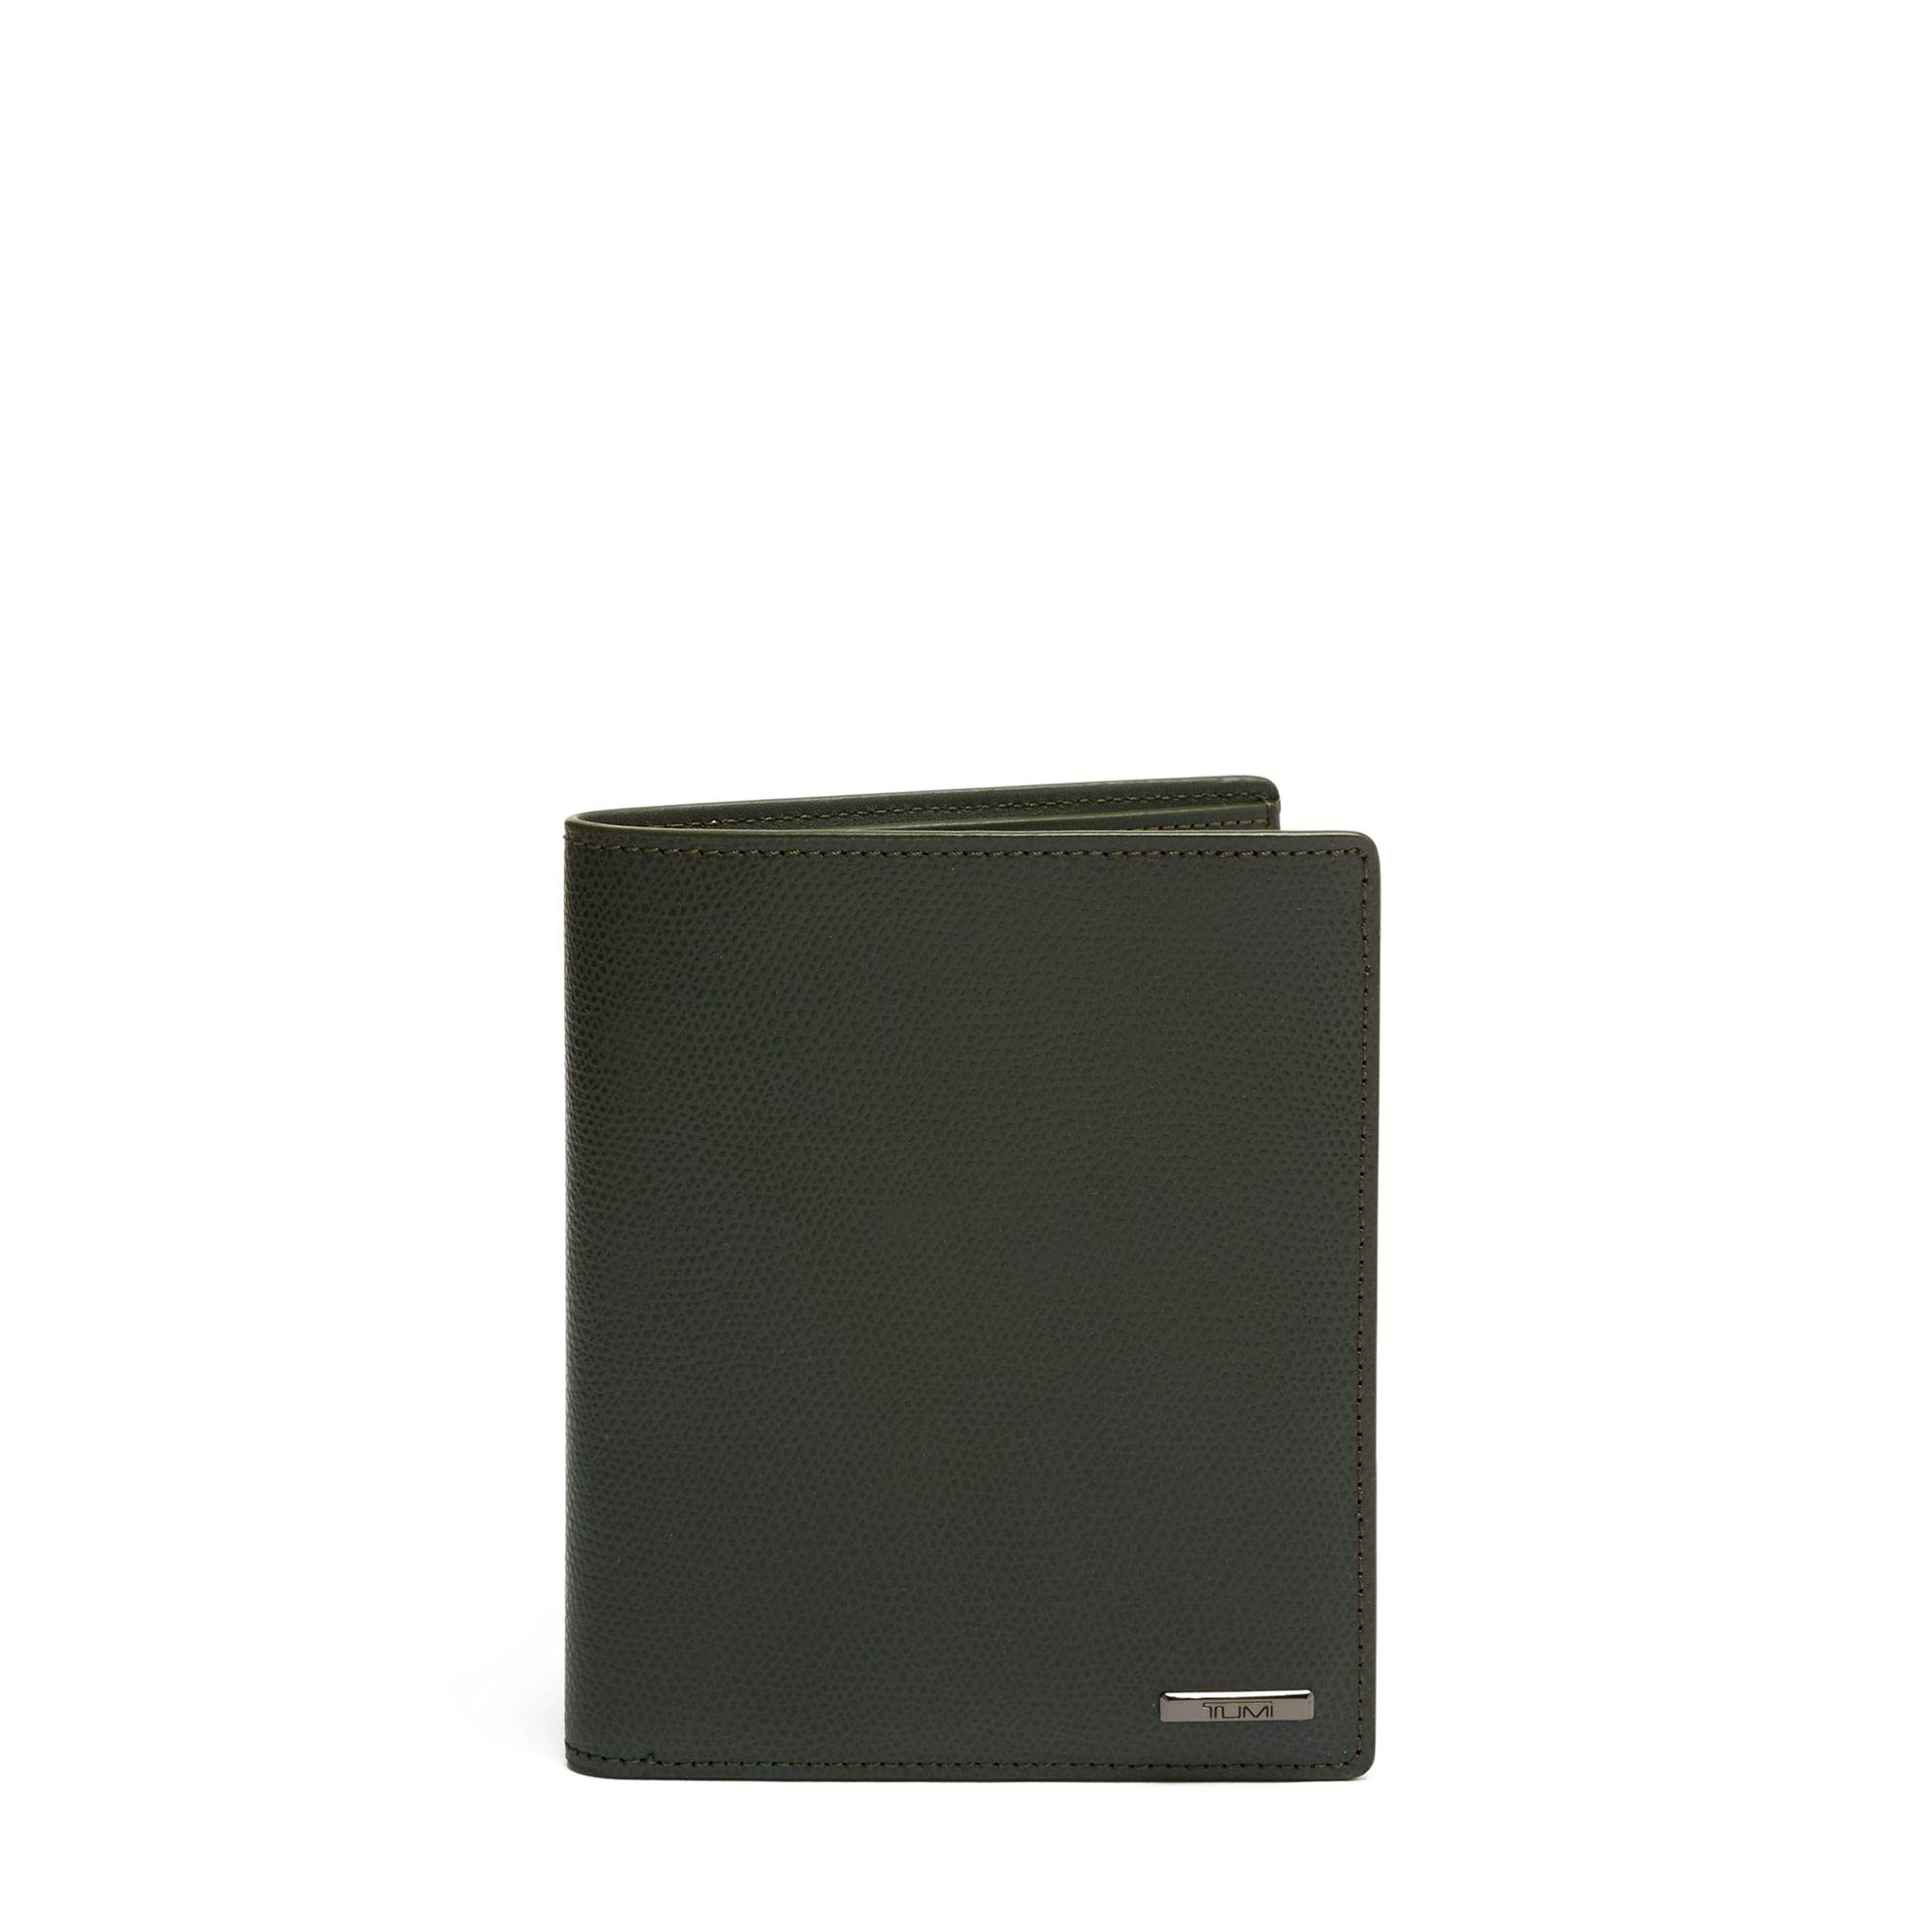 TUMI - Province Passport Case Holder - Wallet for Men and Women - Algae by TUMI